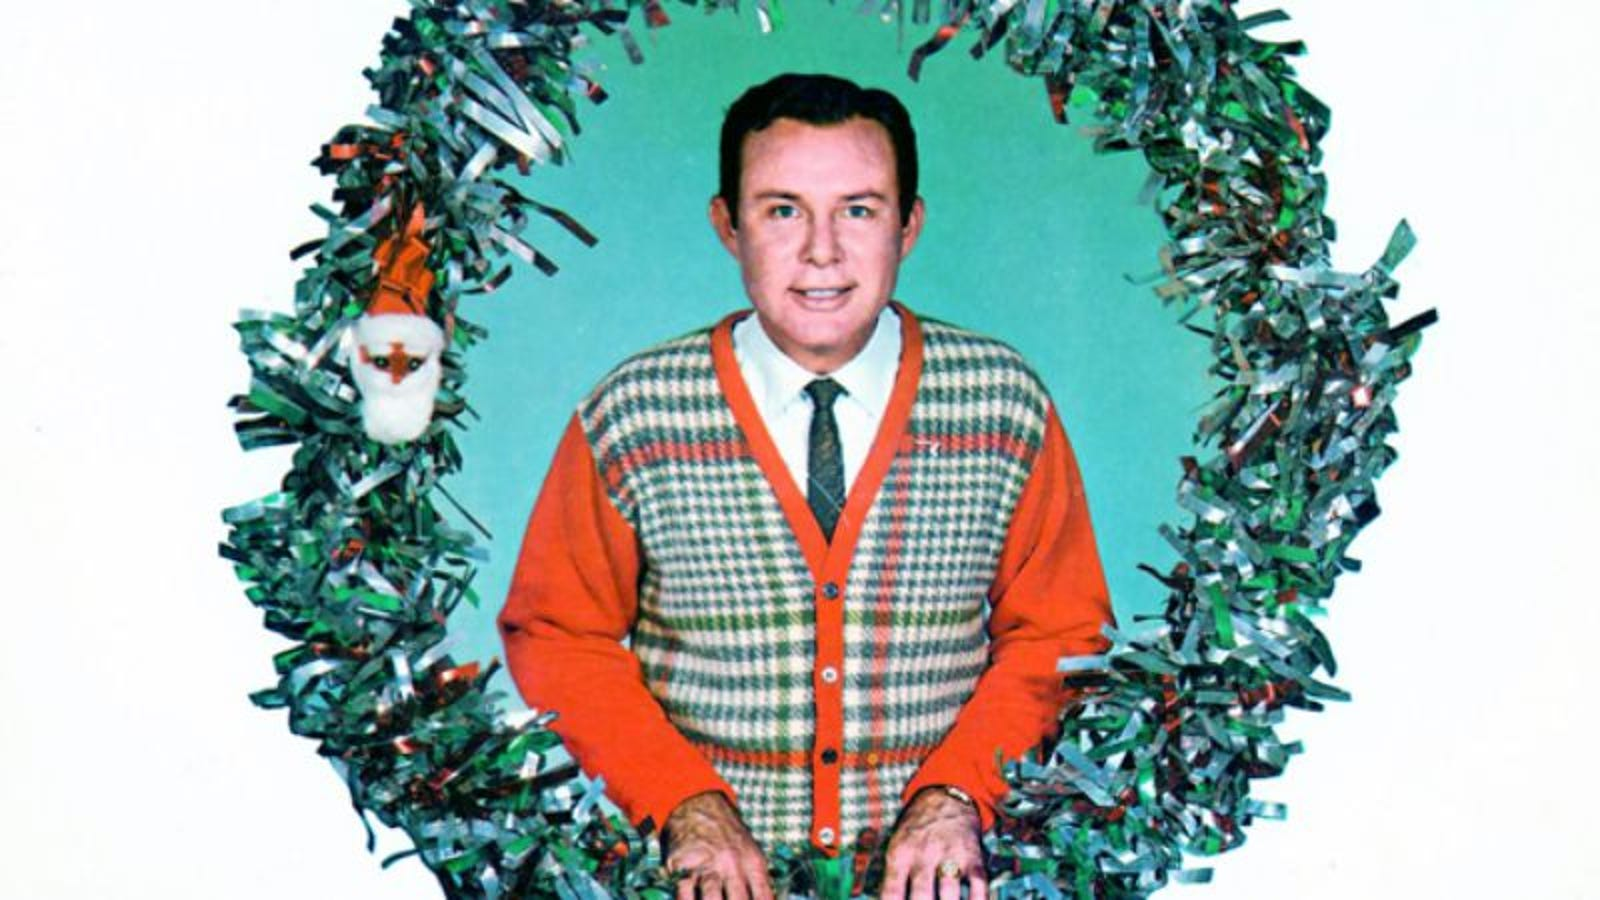 """Jim Reeves\' """"An Old Christmas Card"""": When kitsch becomes classic"""